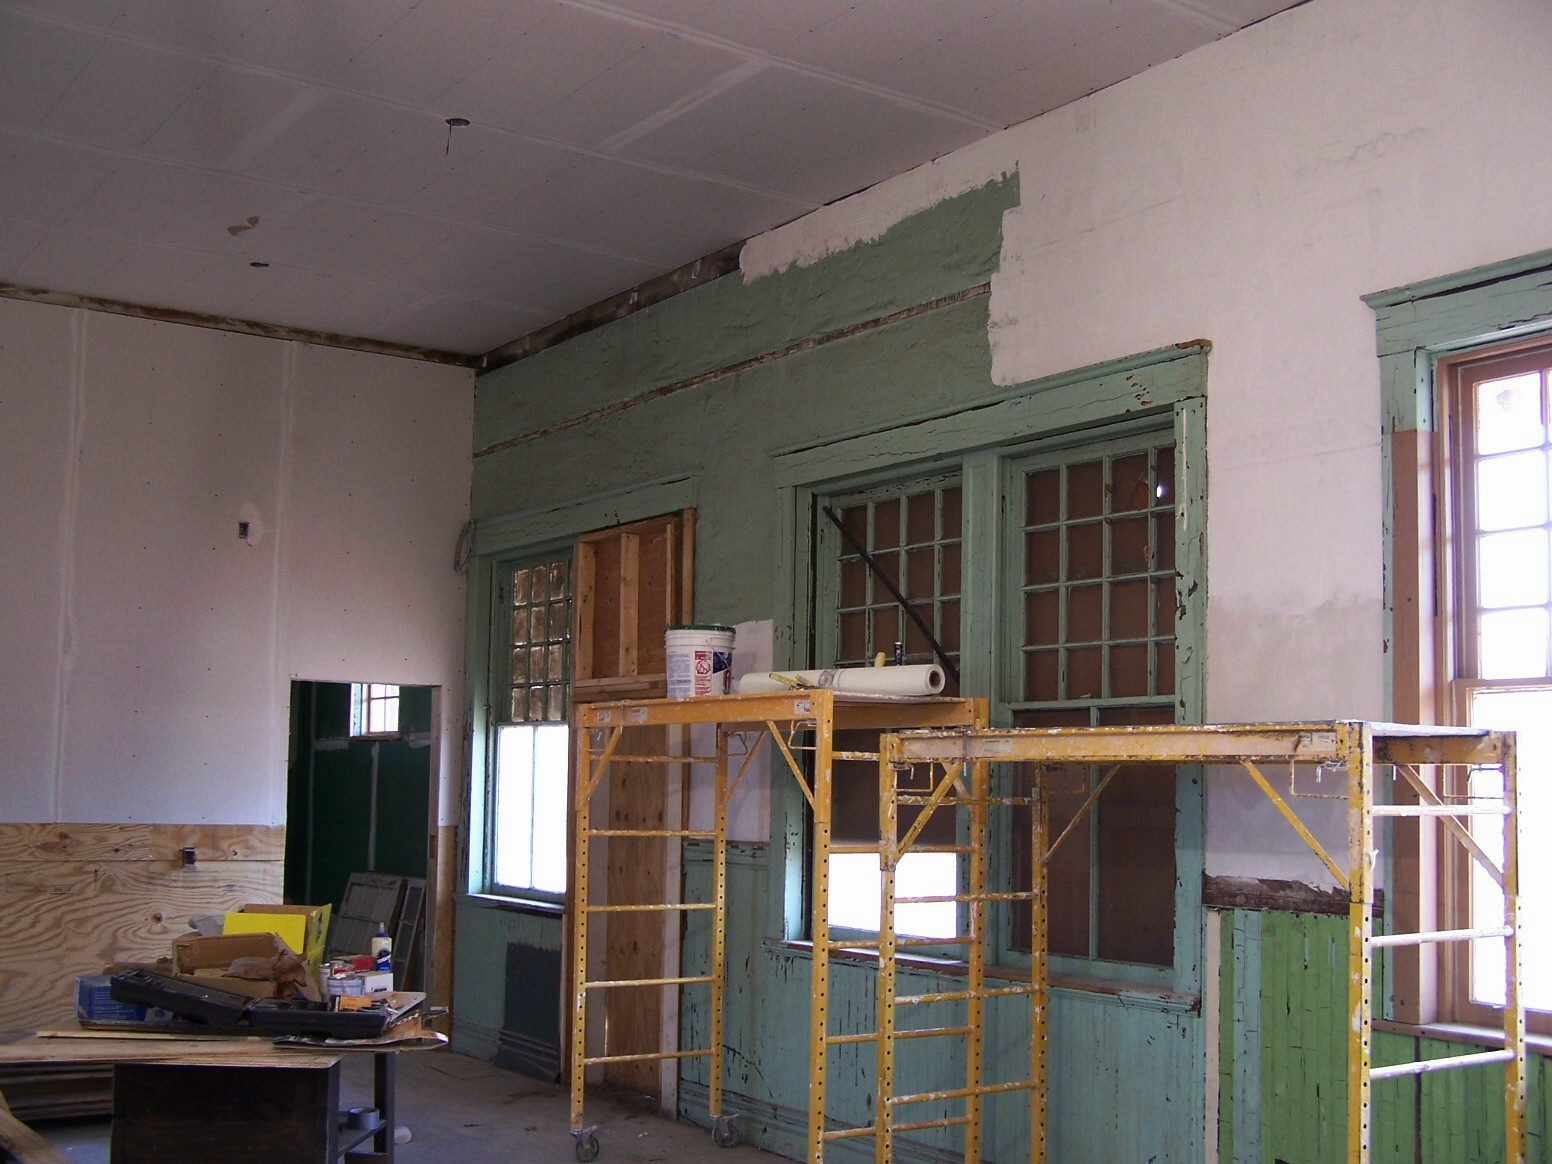 Cleveland depot restoration progress part 8 rock on trains for How to repair interior stucco walls